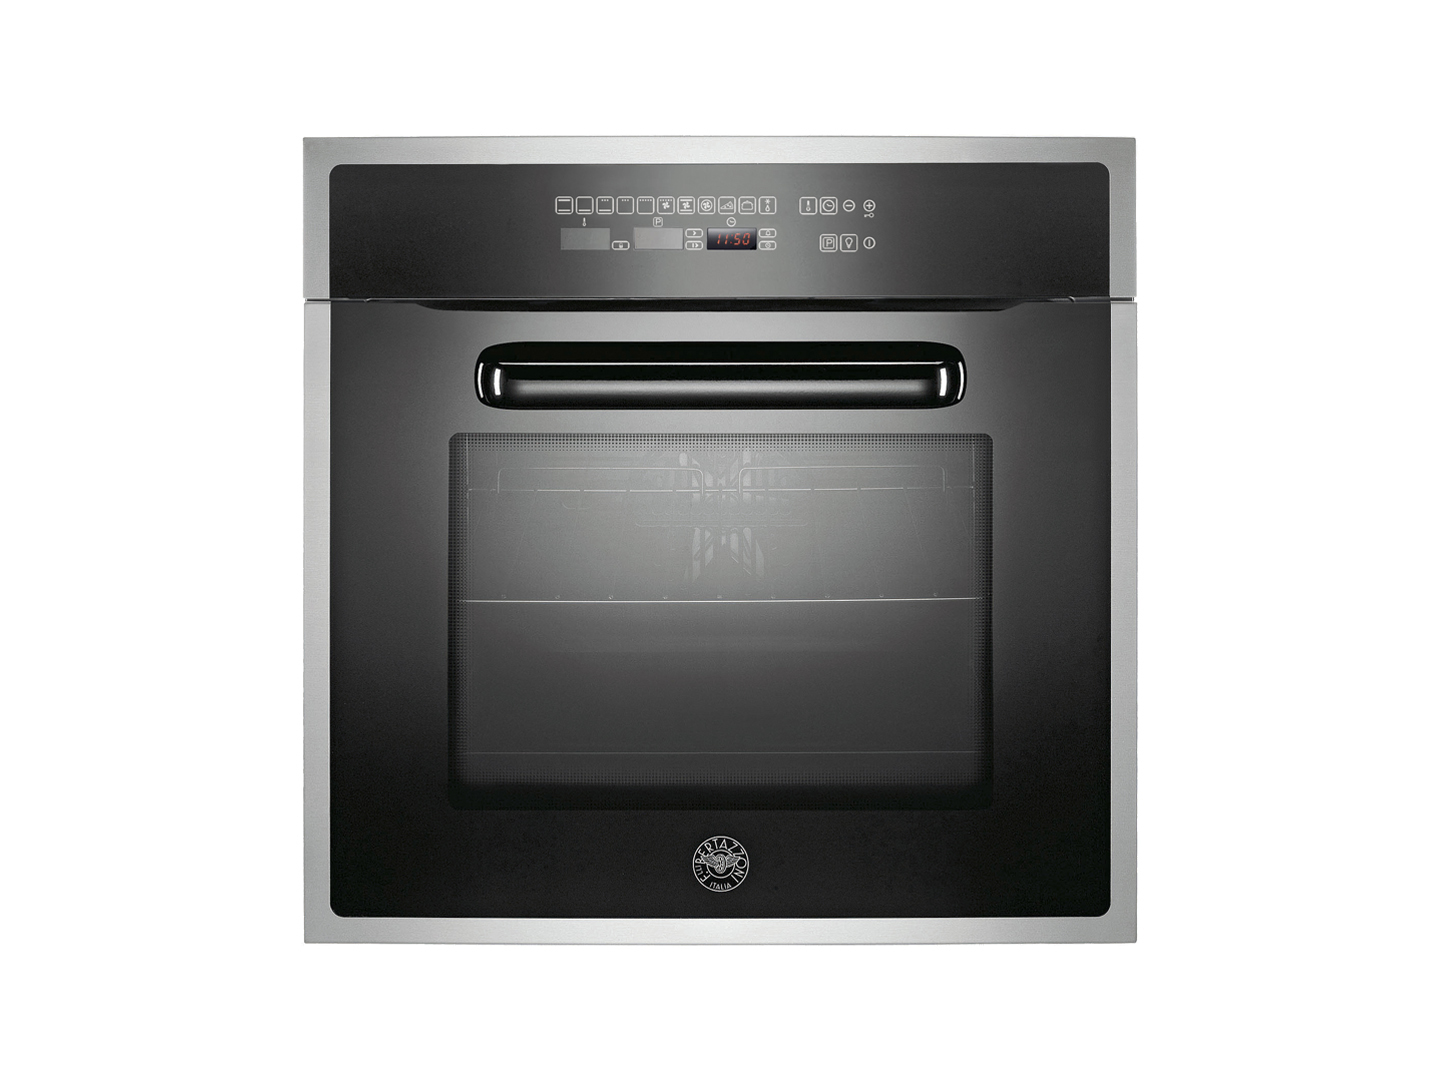 60 single oven XE | Bertazzoni - Black